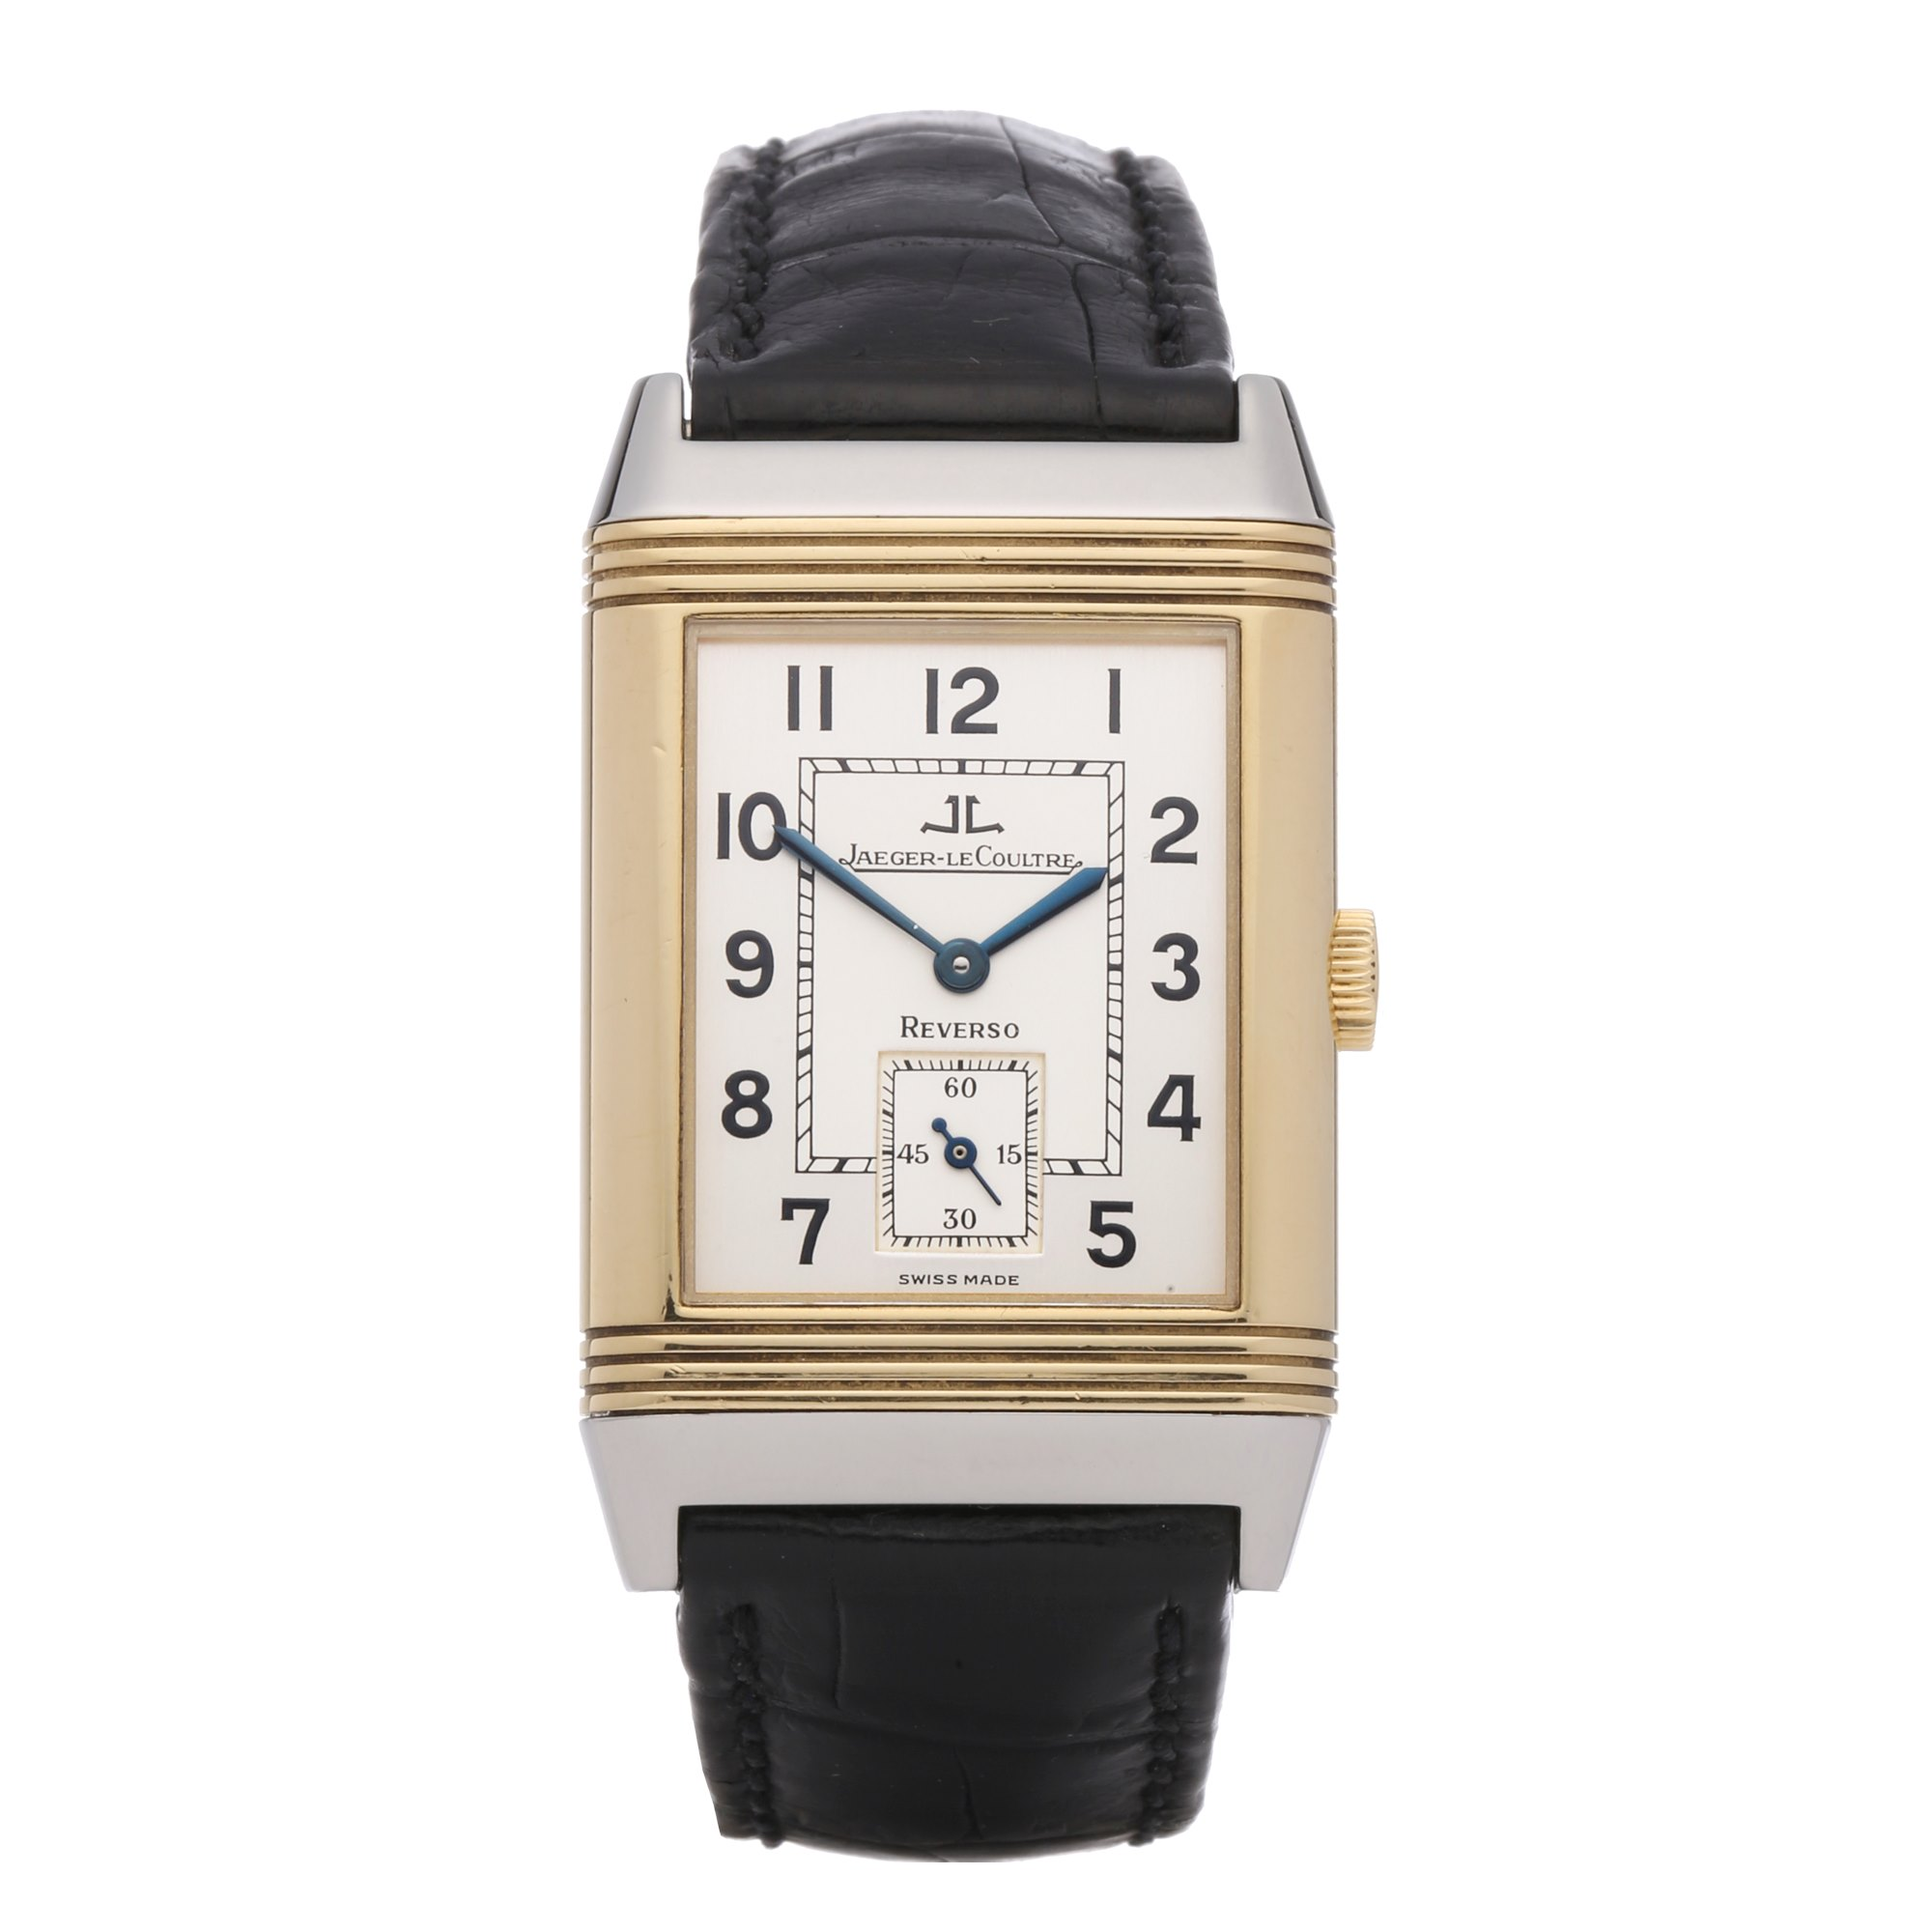 Jaeger-LeCoultre Grand Taille 18K Yellow Gold & Stainless Steel 270.5.62